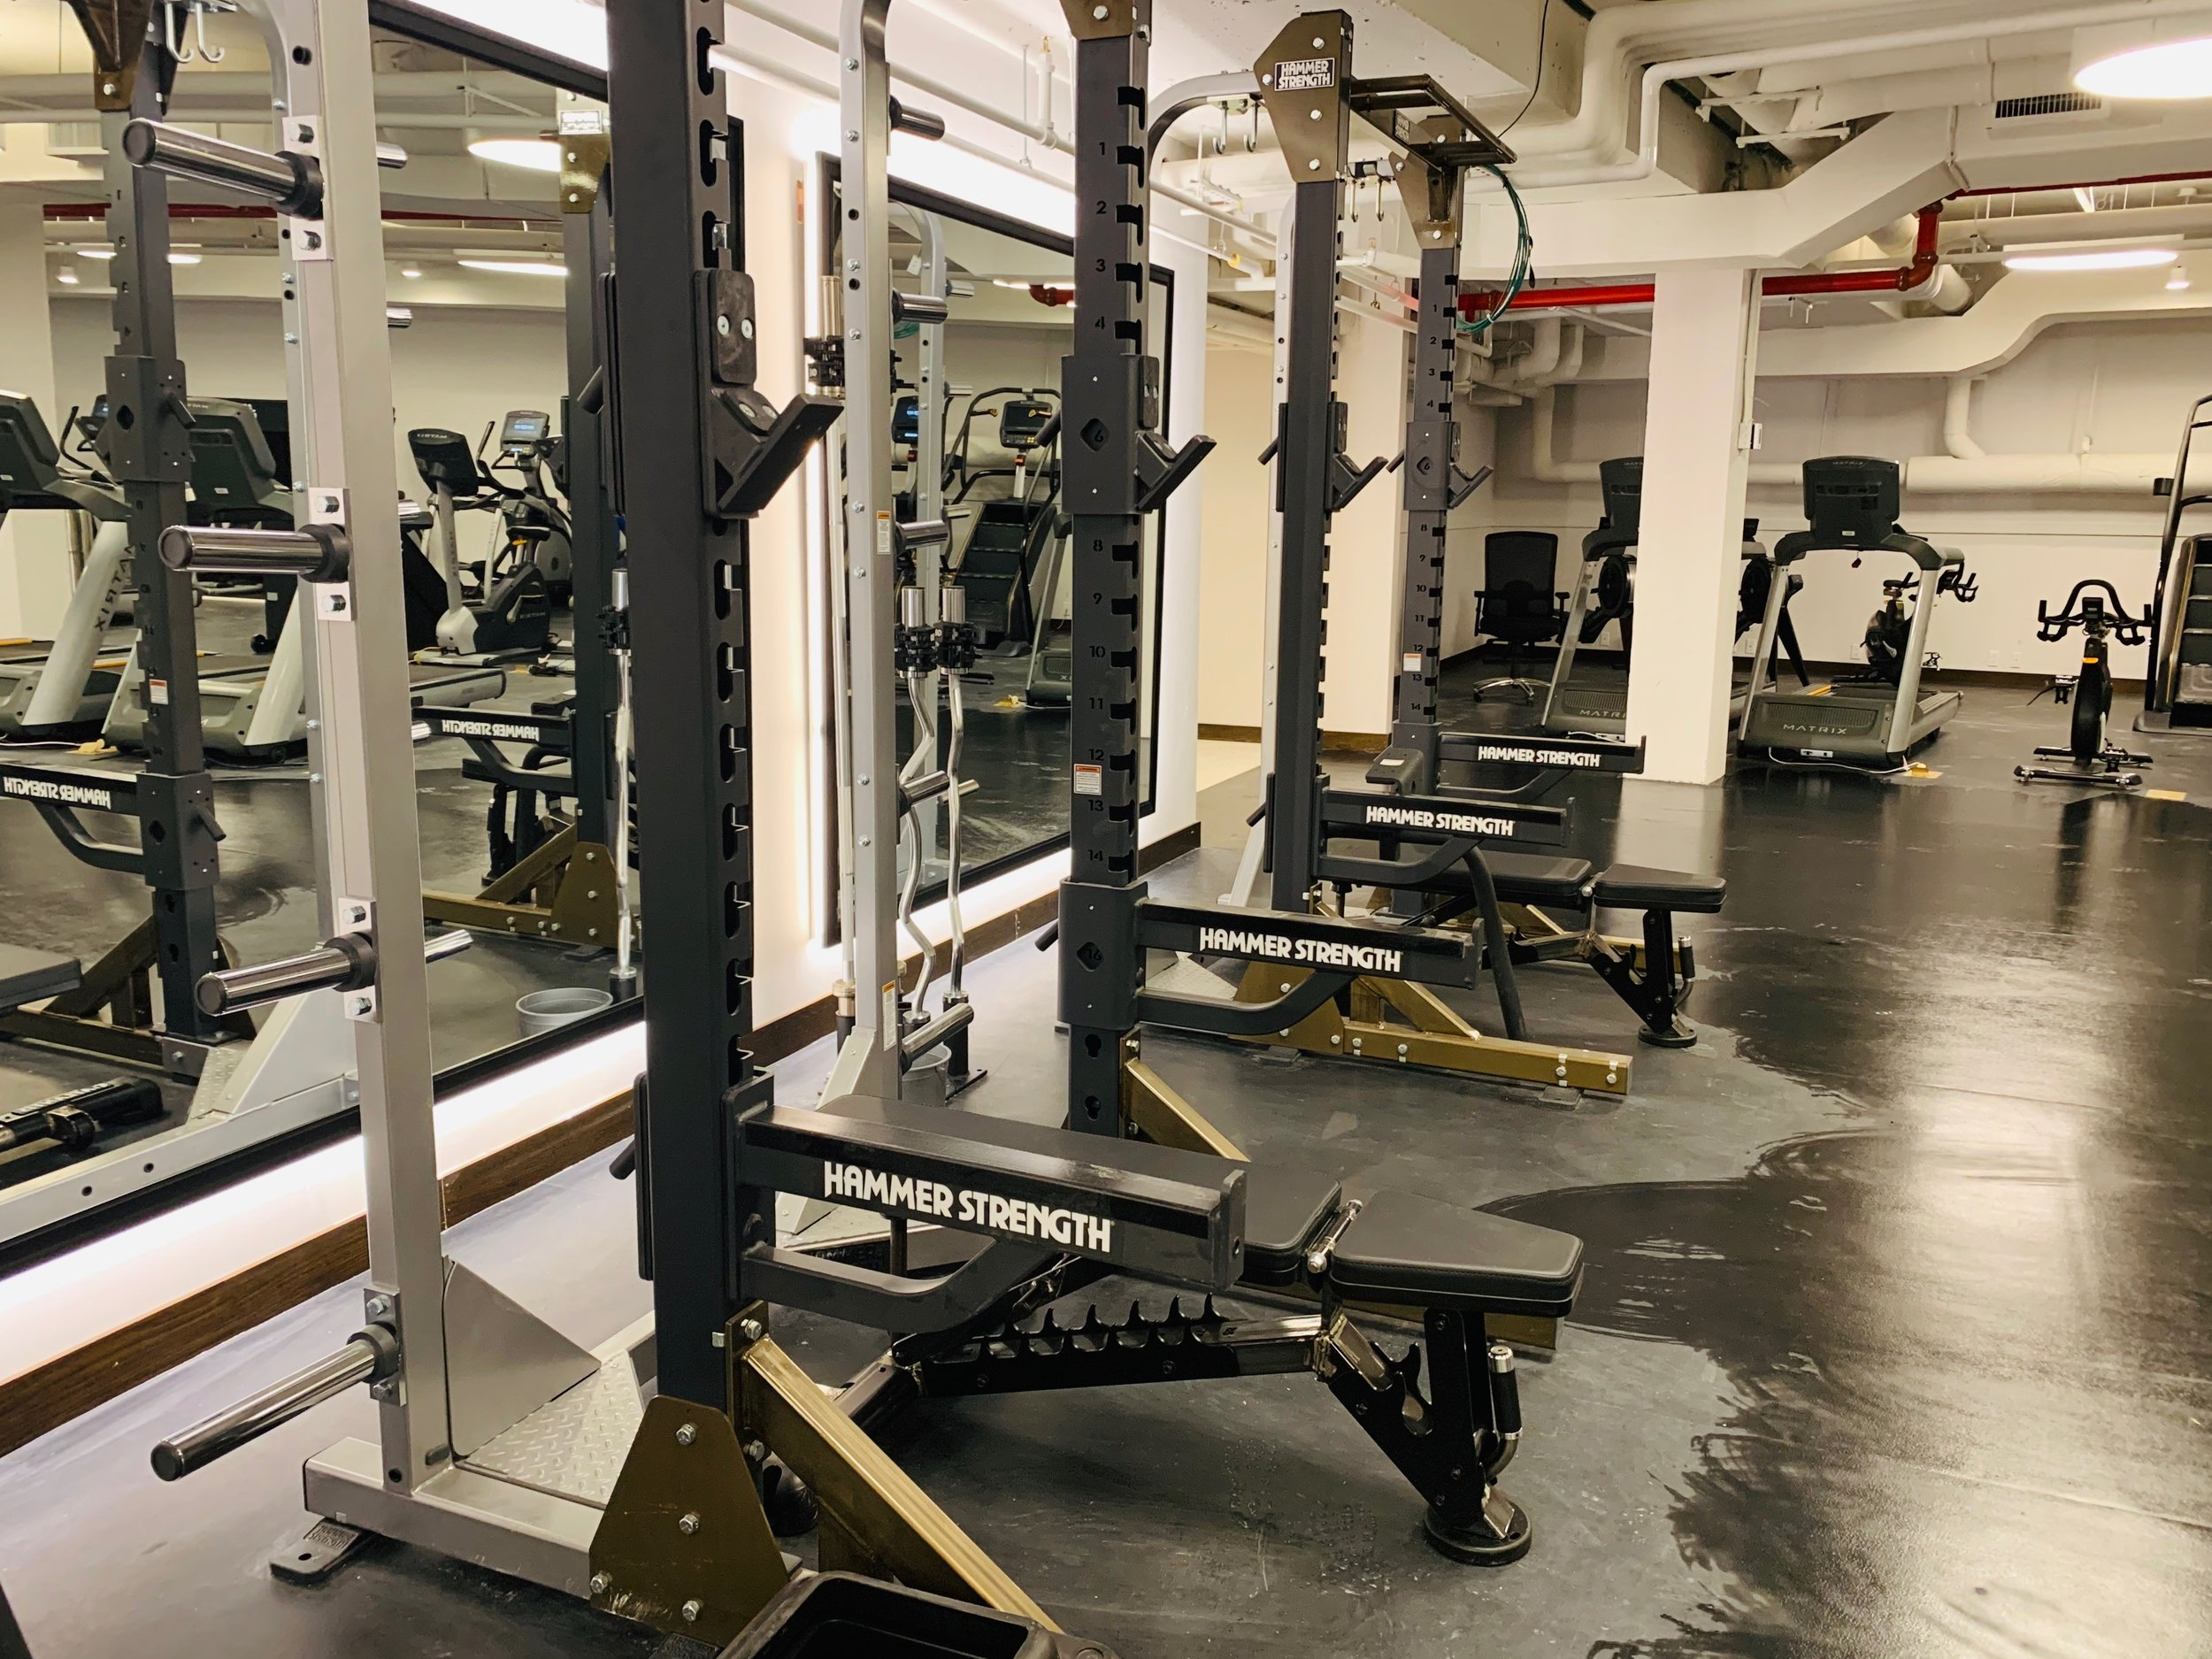 A Review of the World's Largest Hotel Gym at the TWA Hotel